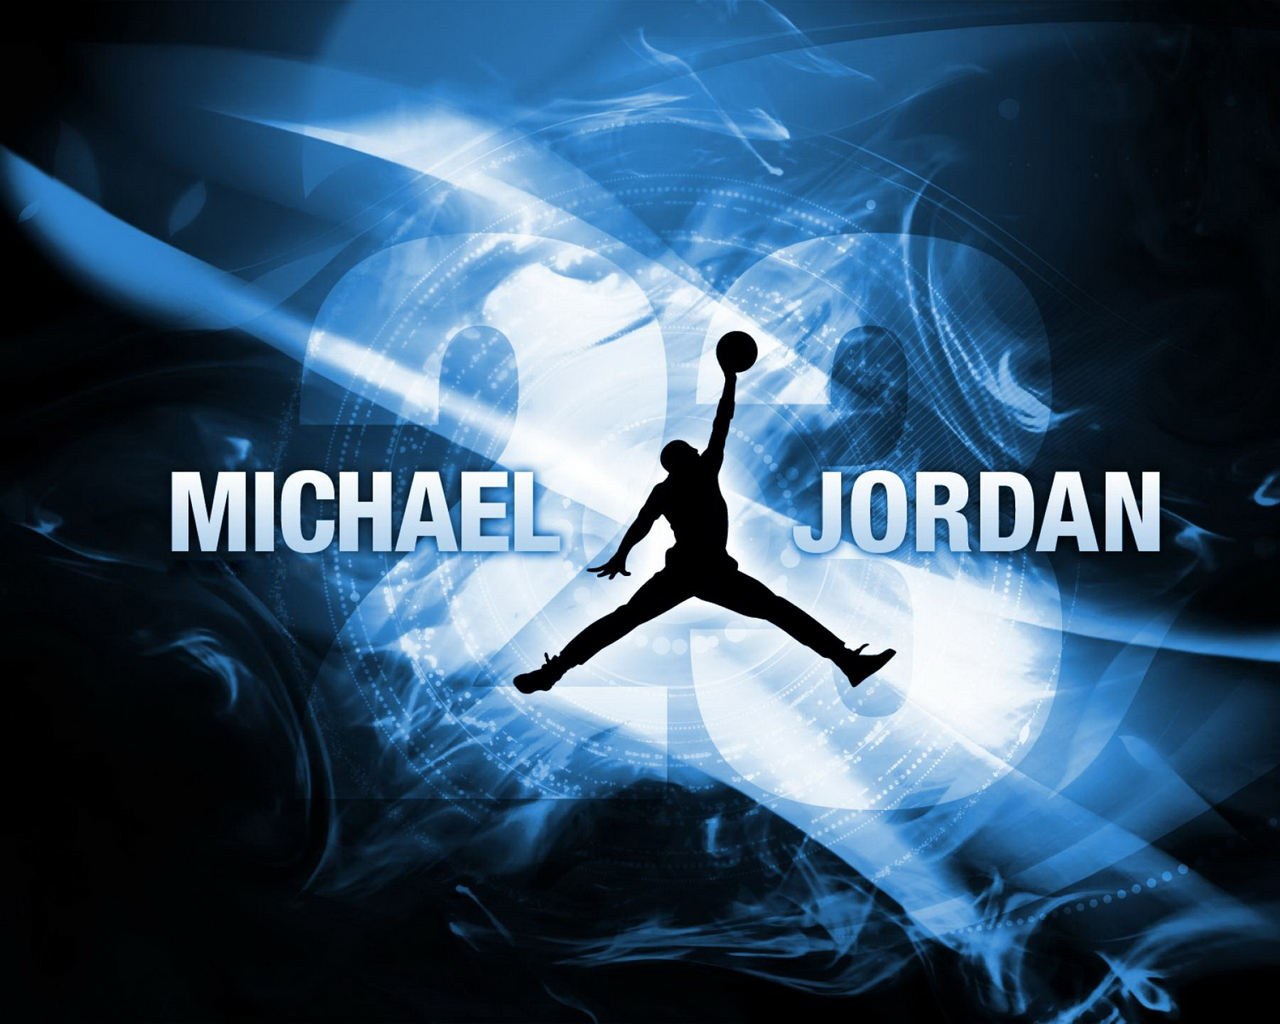 Dunk Wallpaper Hd 34 Hd Air Jordan Logo Wallpapers For Free Download